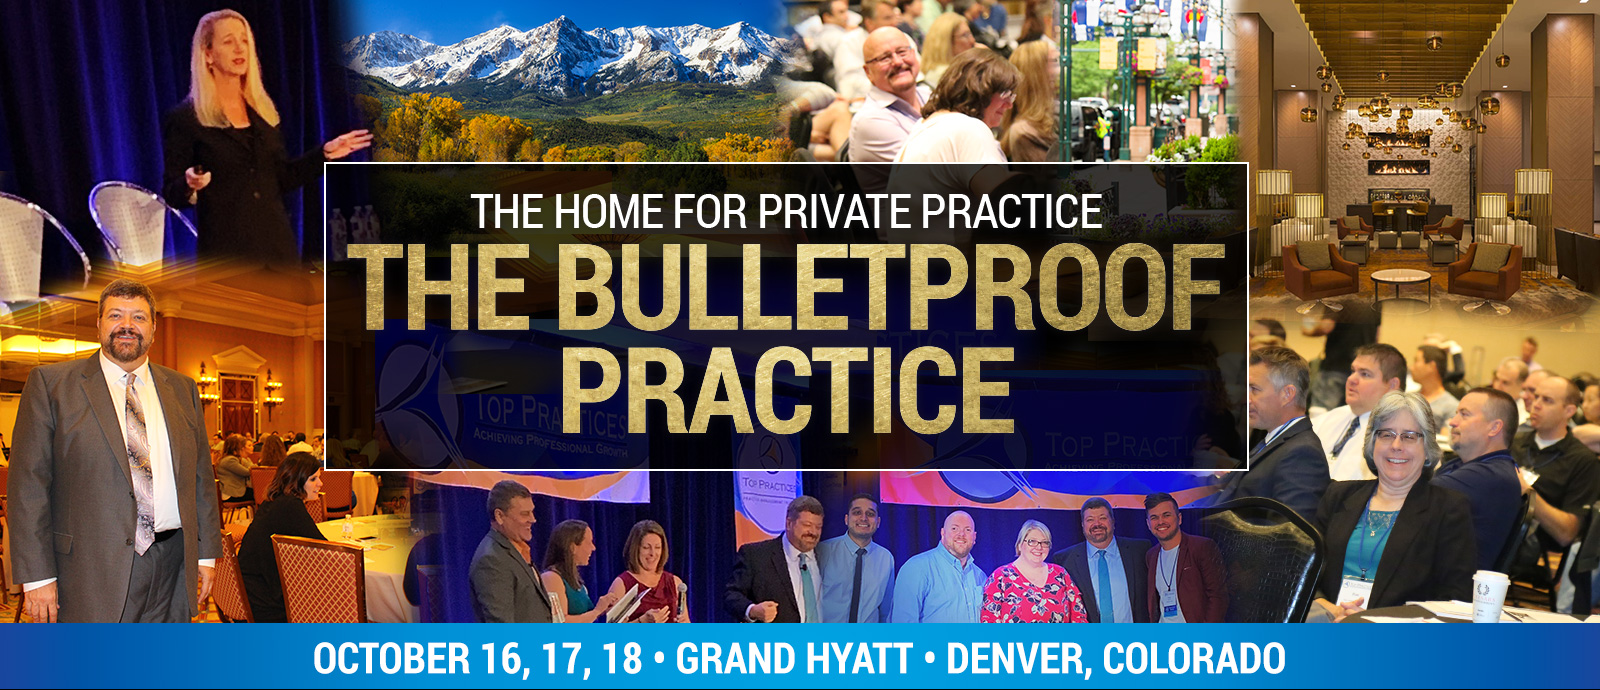 Top Practices Summit 2020